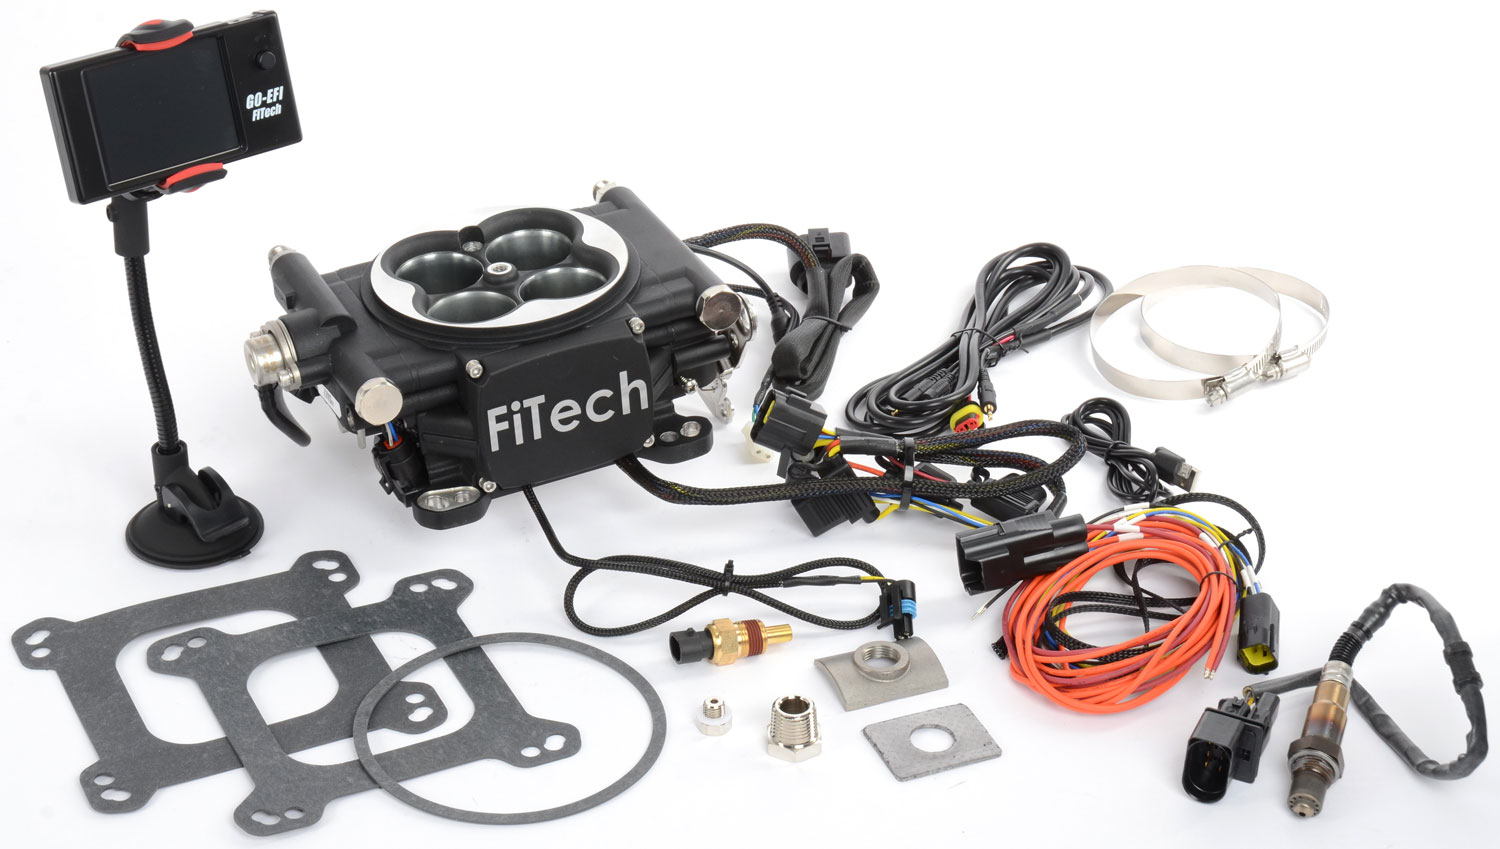 Fitech 30002 Wiring Diagram. . Wiring Diagram on